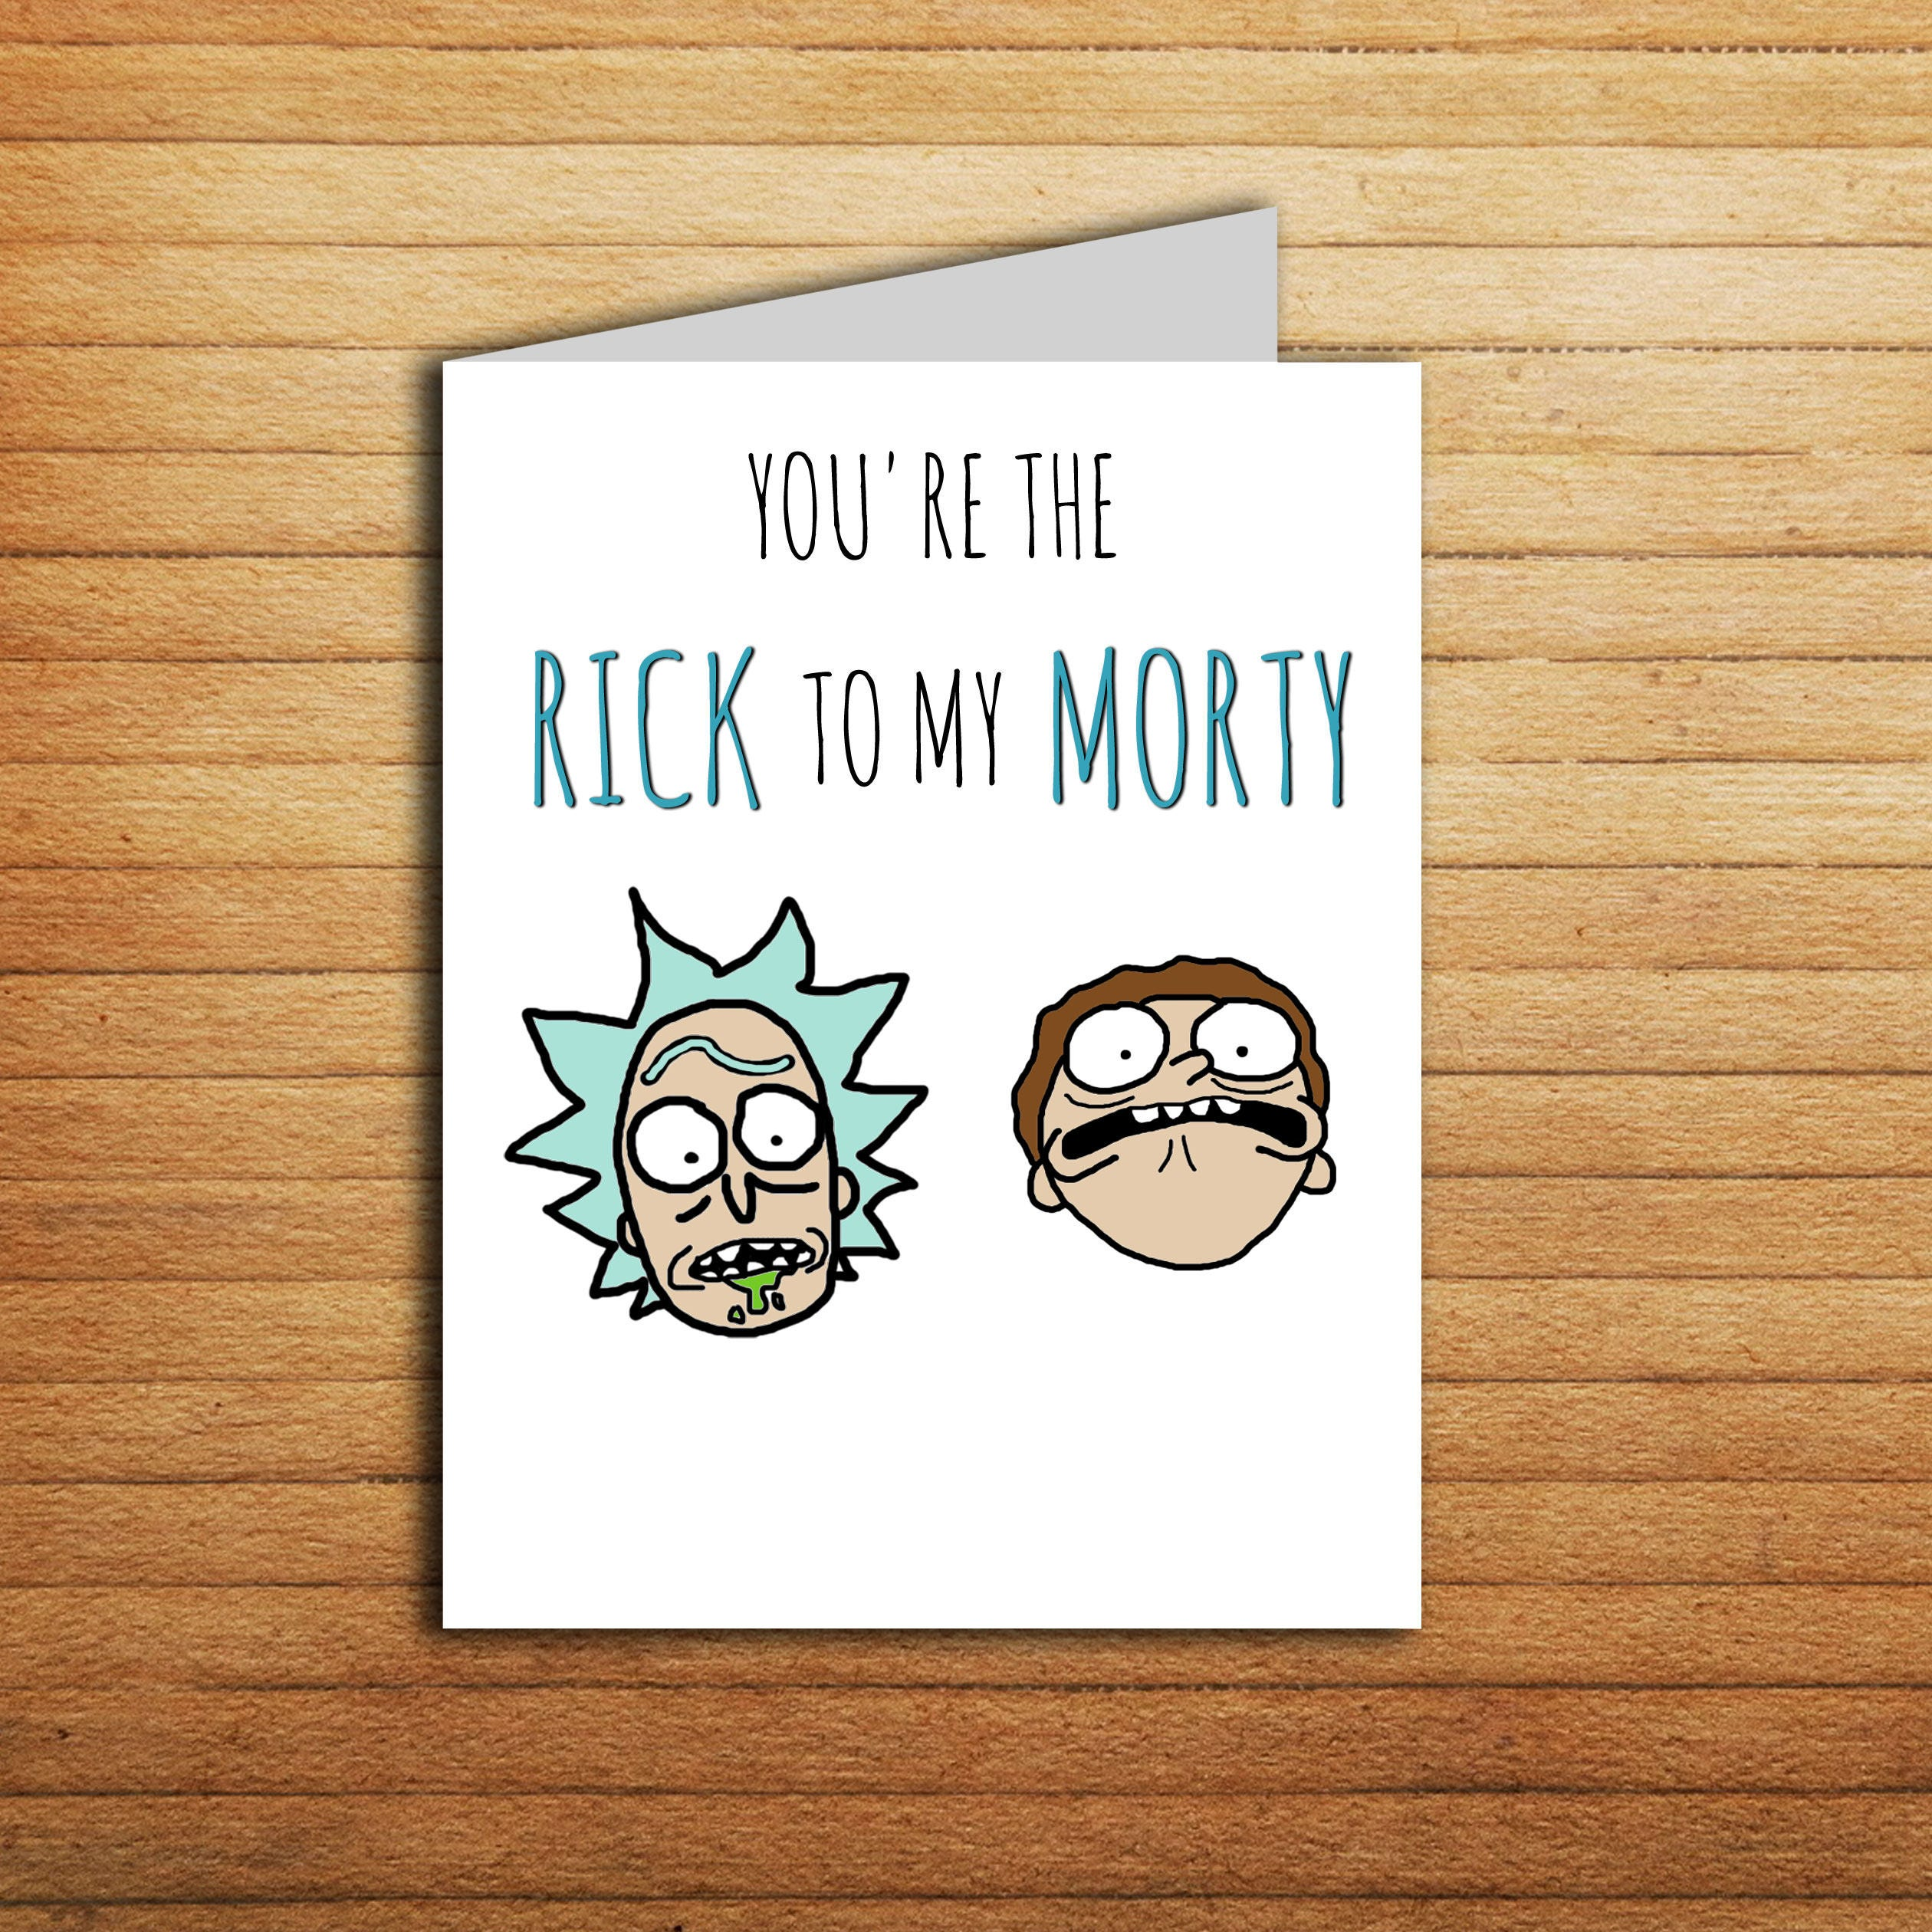 Best Rick And Morty Quotes Rick And Morty Card Youre The Rick To My Morty Valentines Day